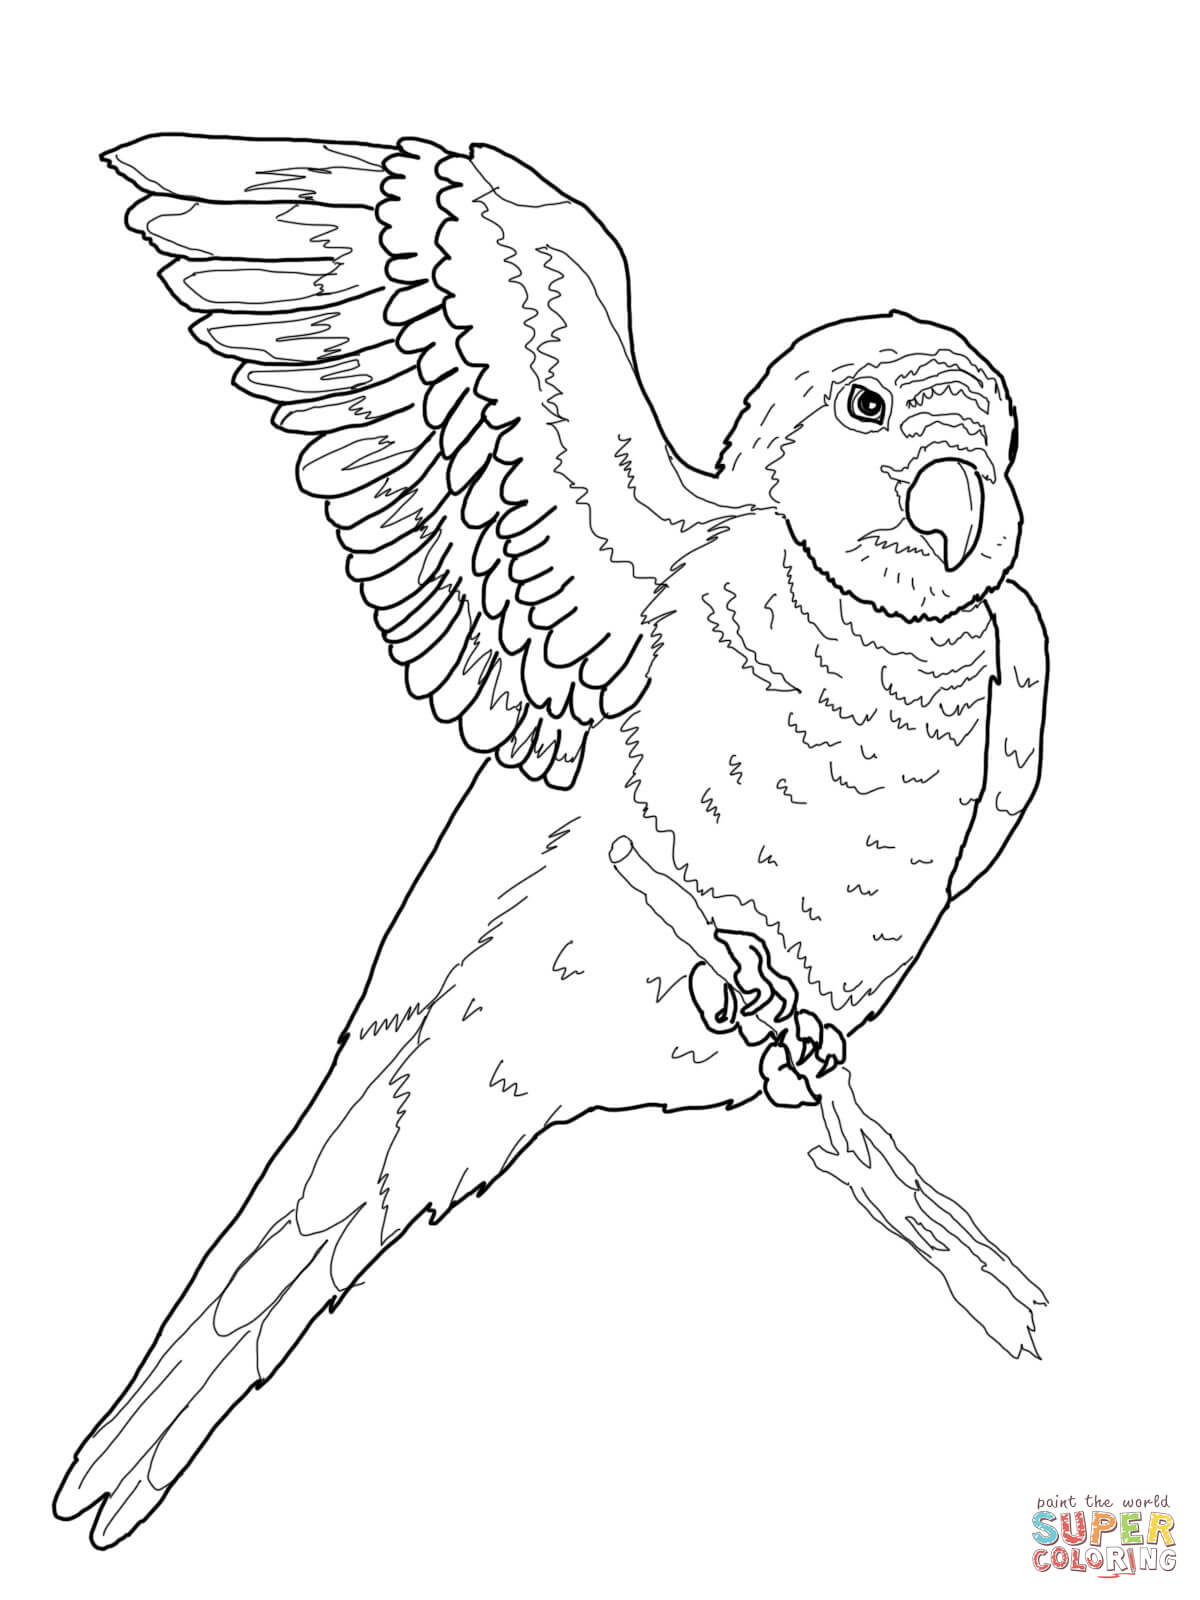 click the quaker parrot coloring page to view printable version or